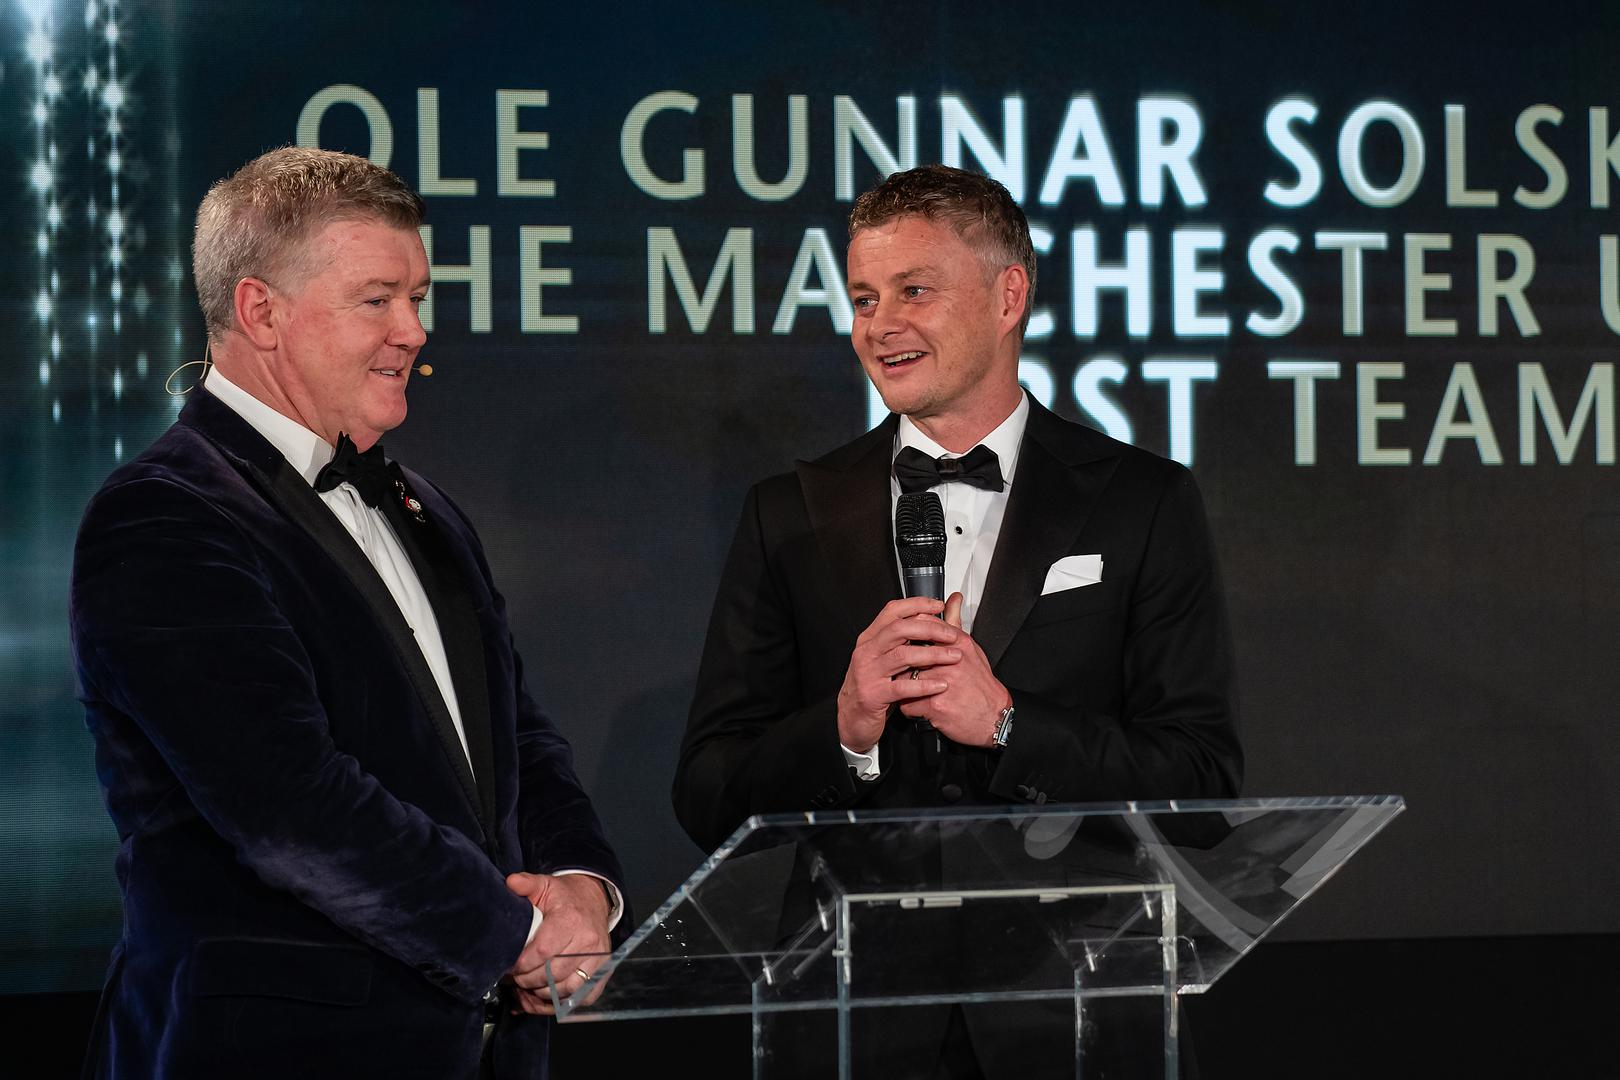 Ole Gunnar Solskjaer talks to event host Geoff Shreeves at the Manchester United Gala Dinner..